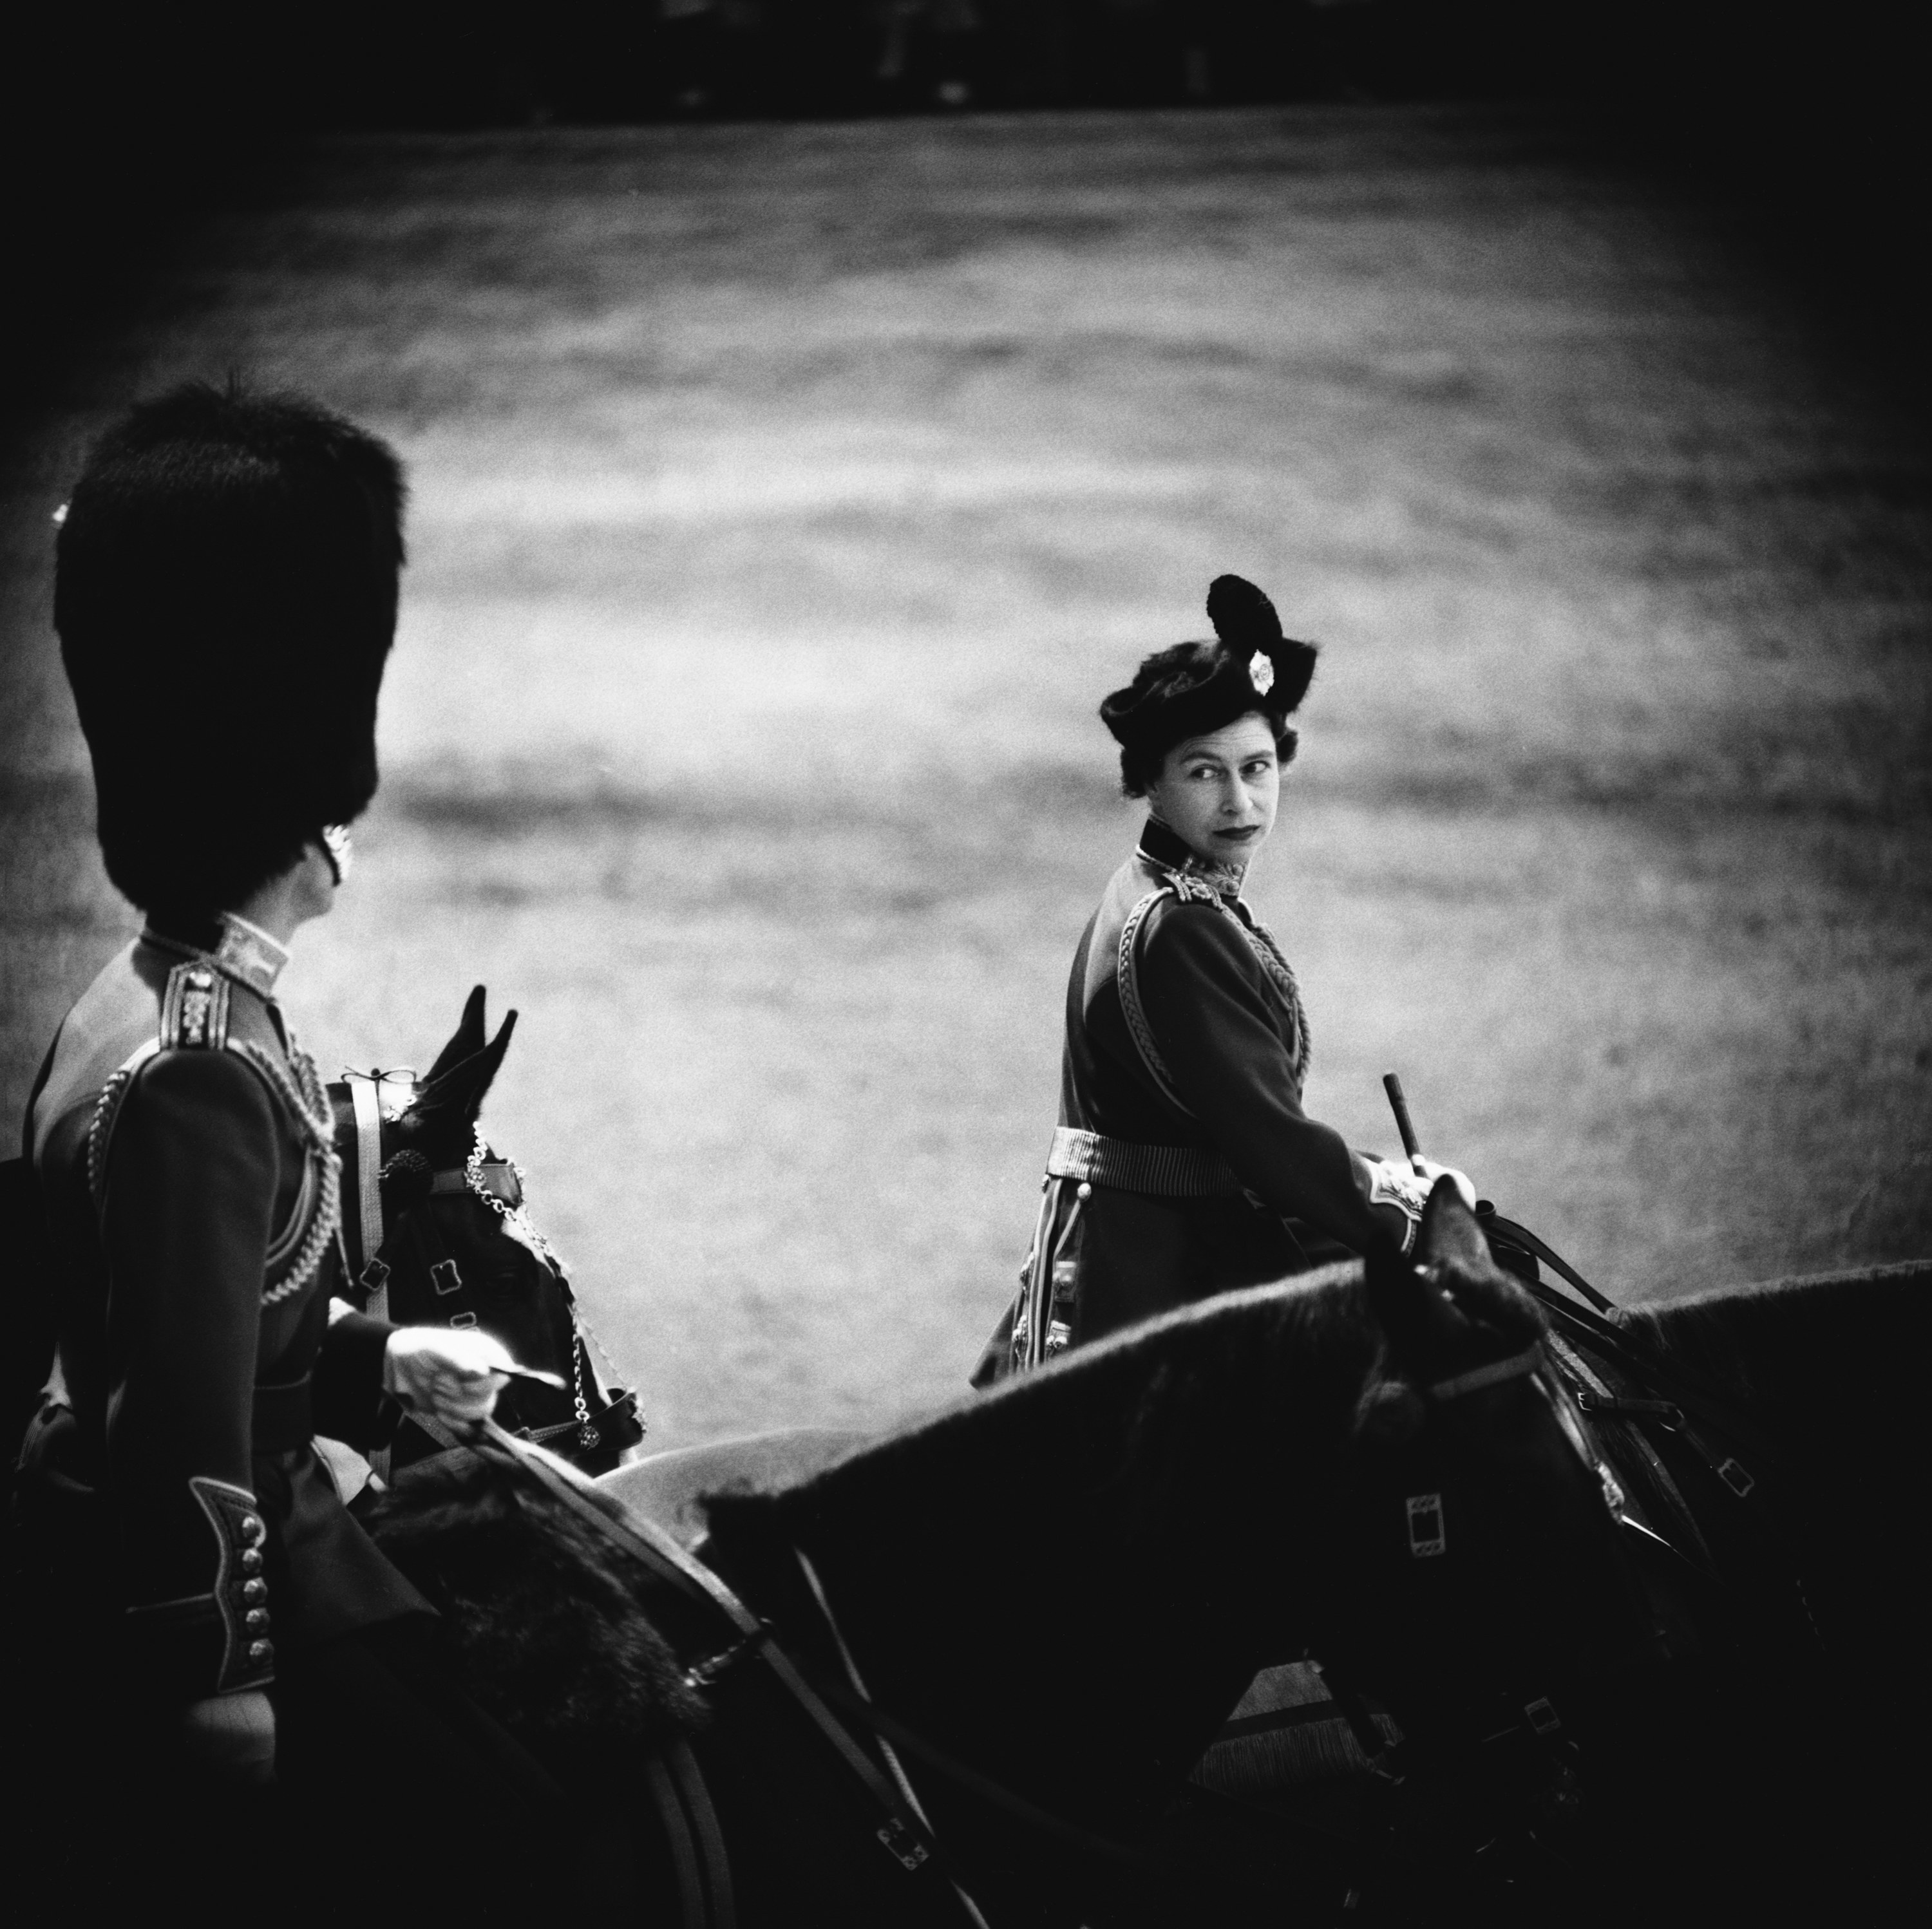 The queen looks back from horseback towards her husband, who is seen from behind